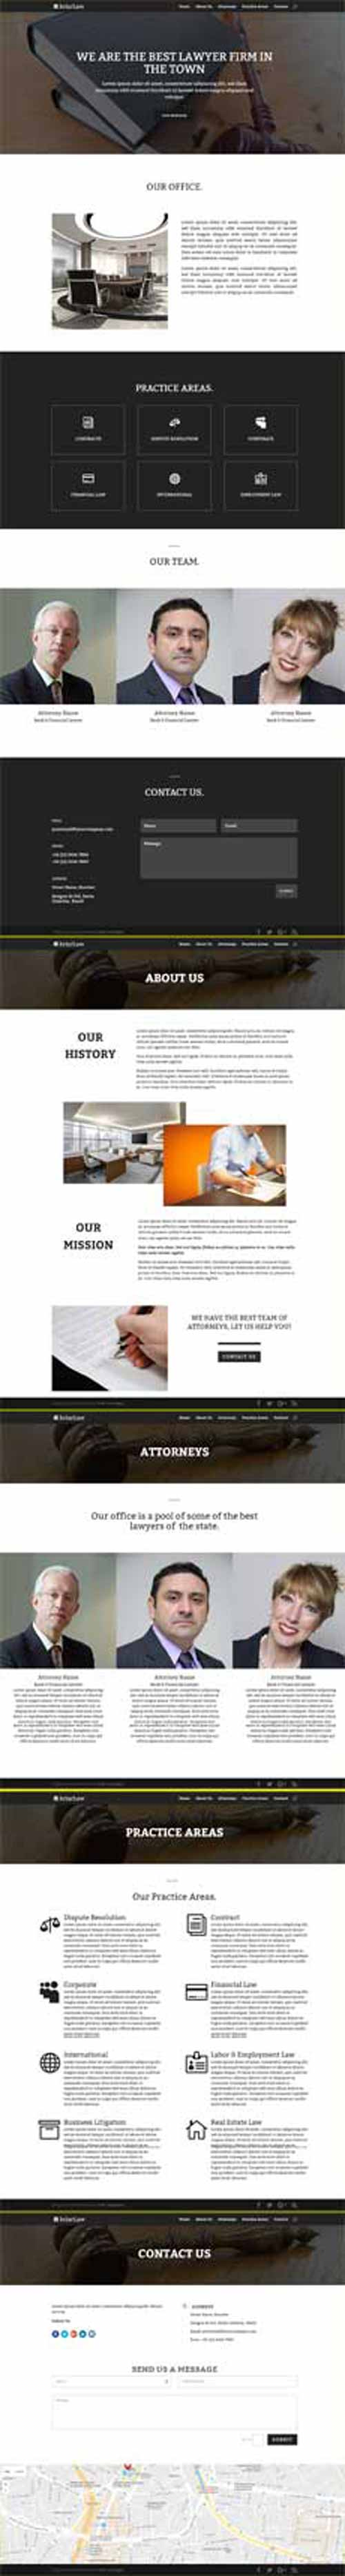 Divi lawyer layouts on Divi Theme Layouts